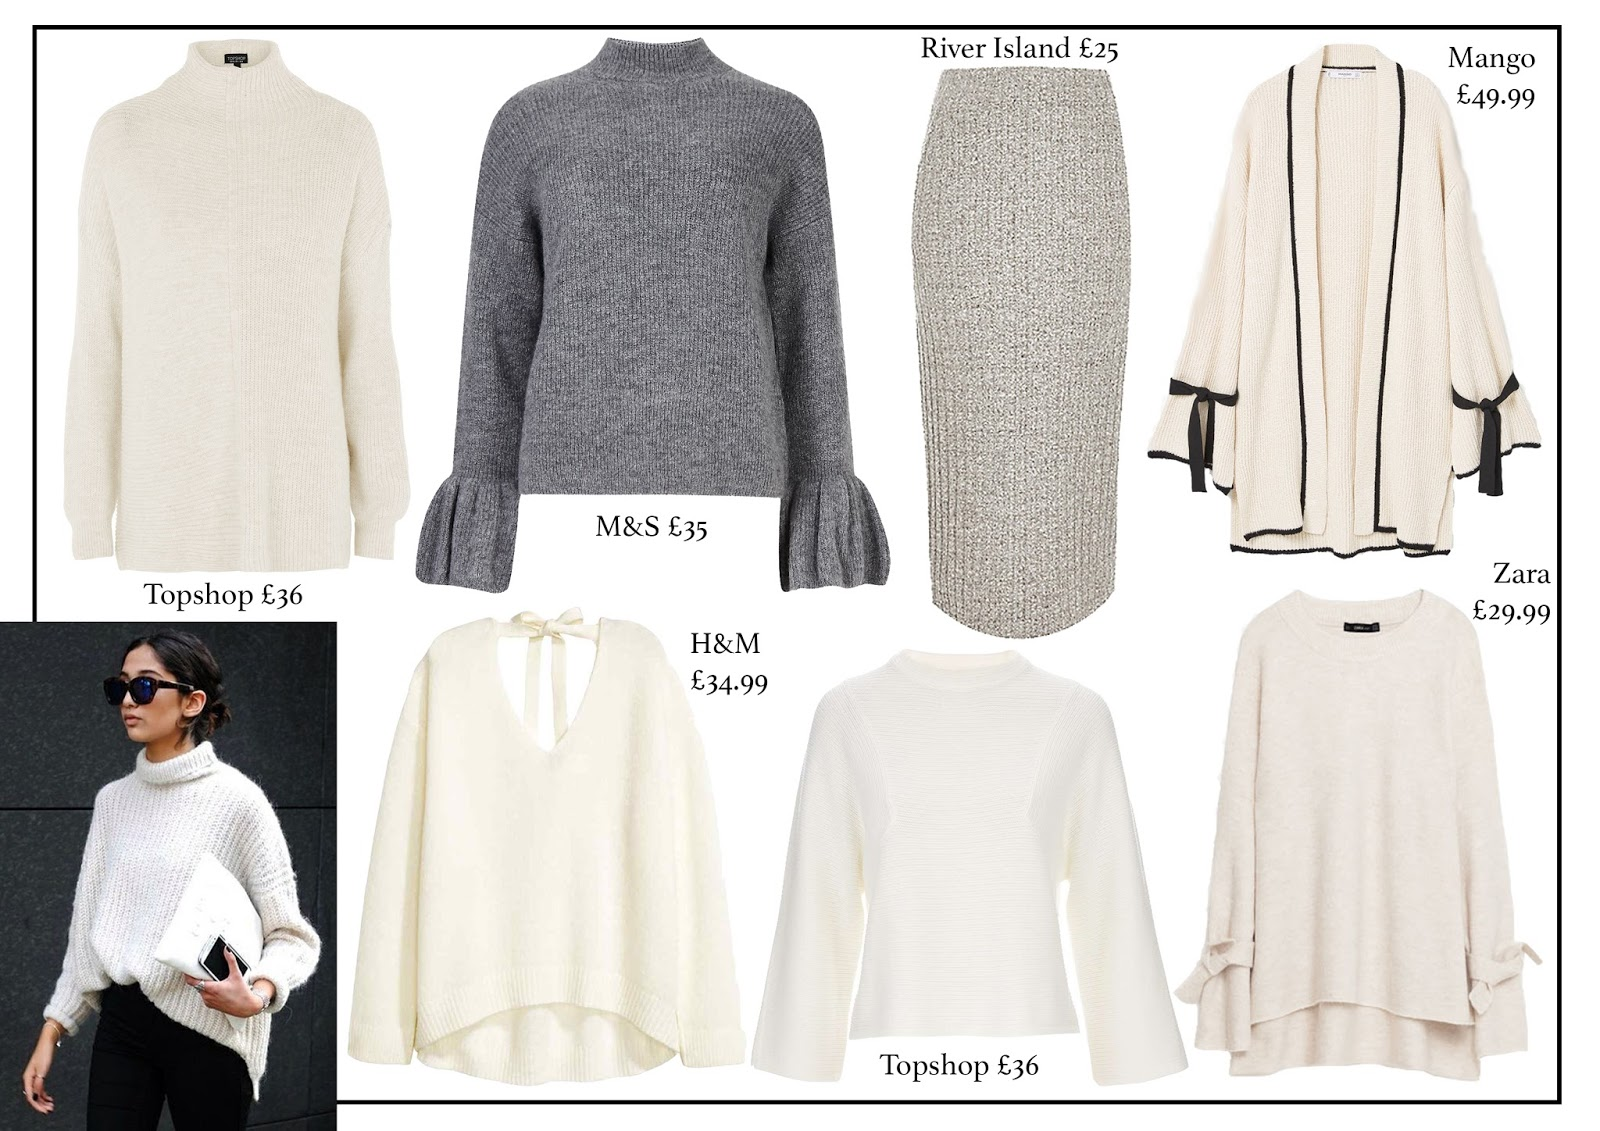 knitwear, aw16, fashion, fashion blog, topshop, m&s, river island, mango, h&m, zara, laura rebecca smith